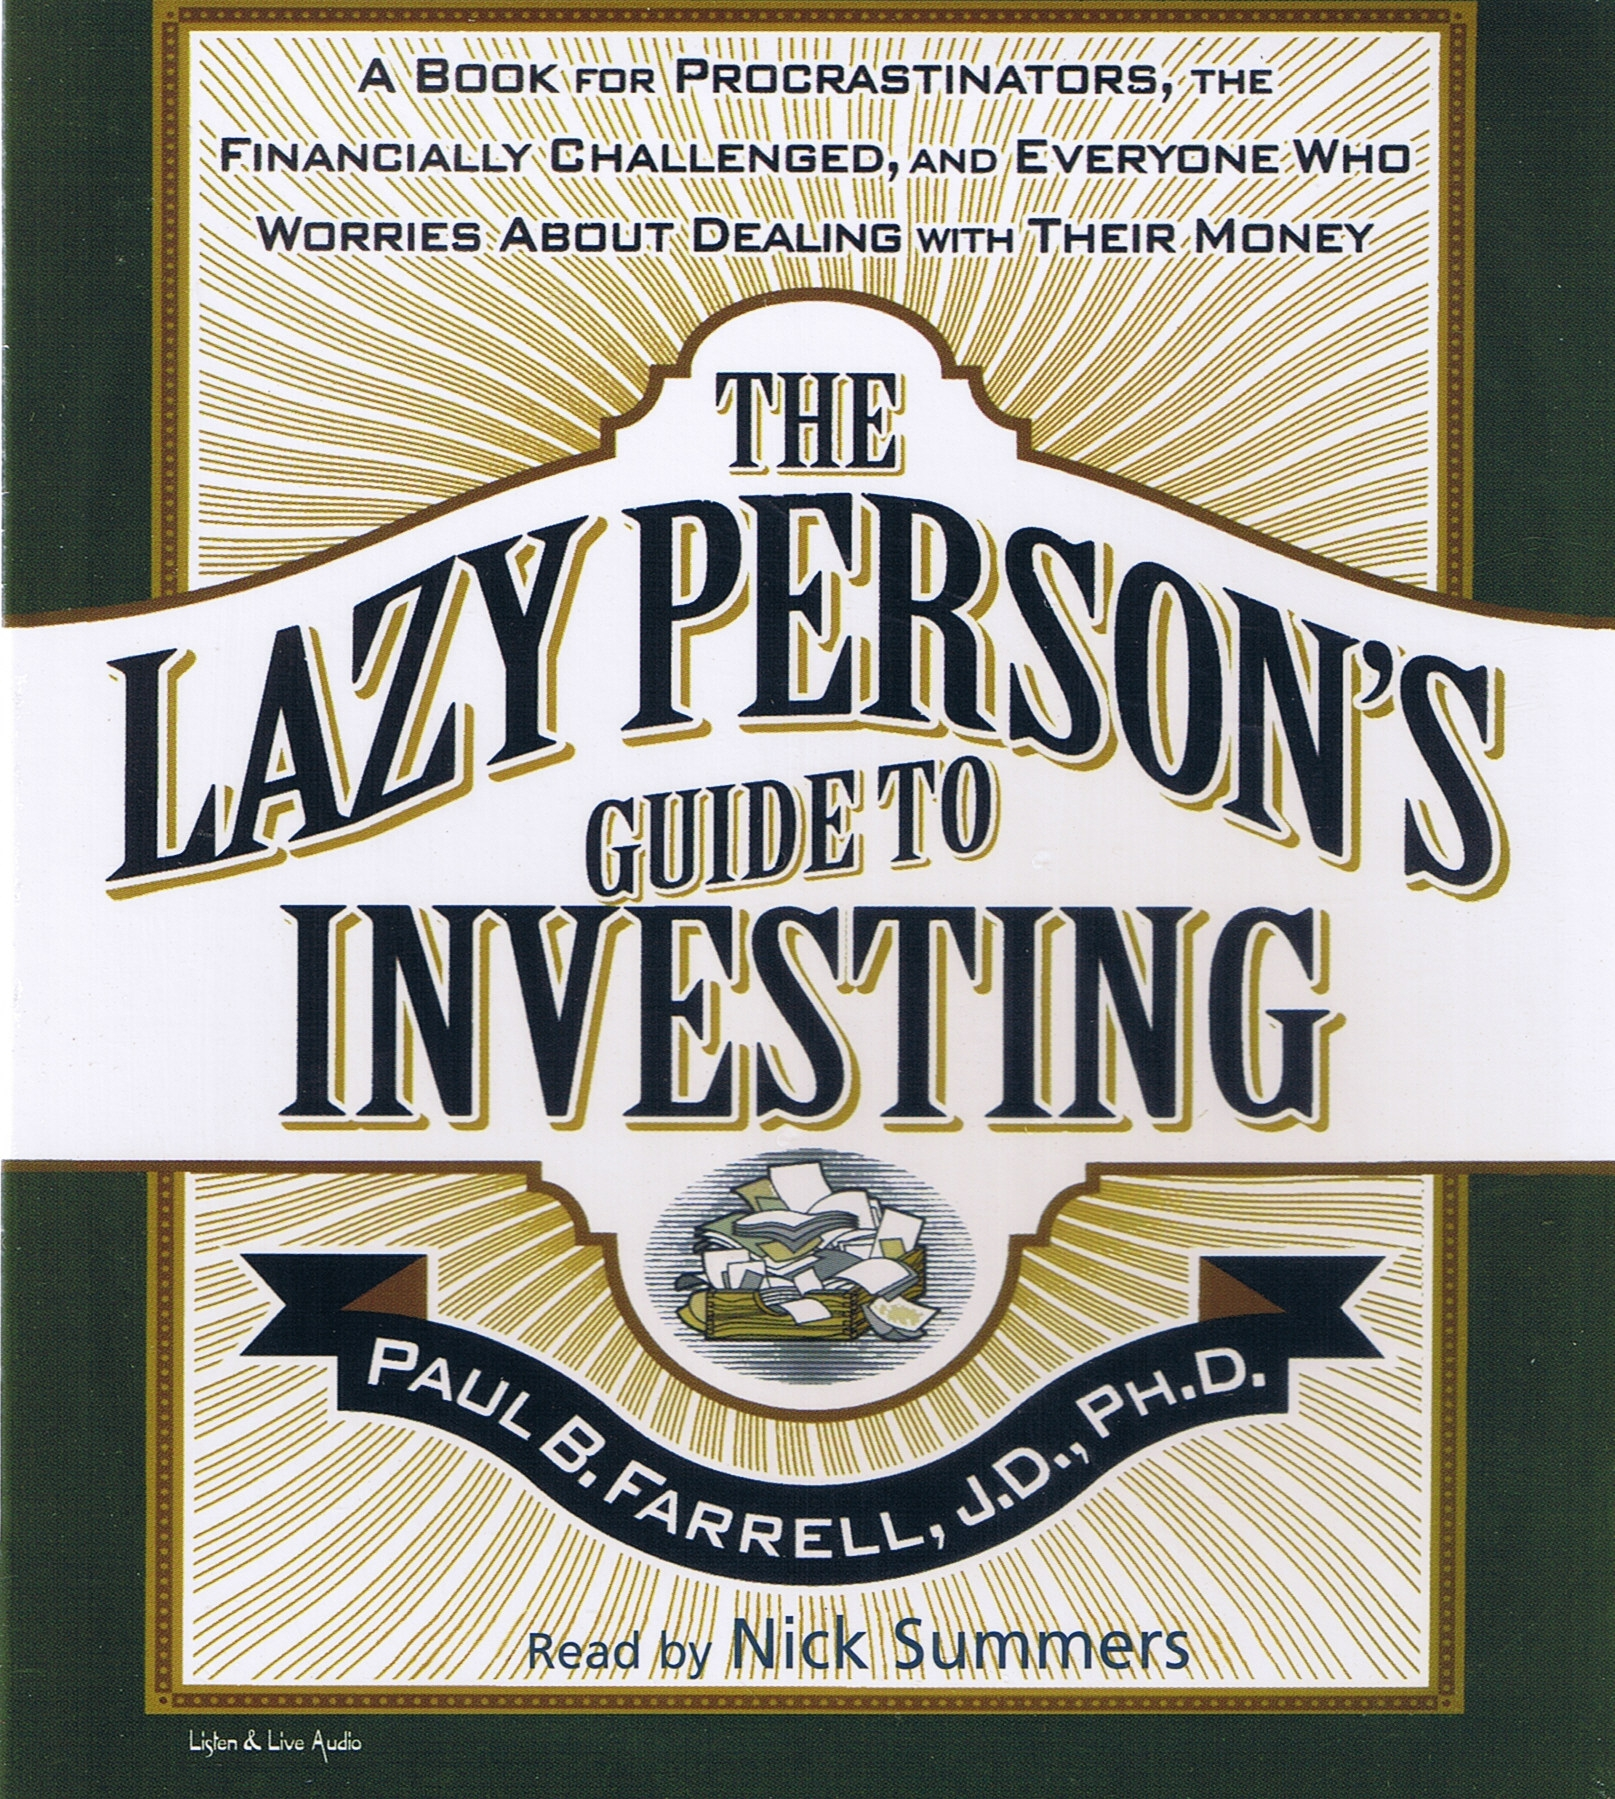 The Lazy Person's Guide To Investing [DD]